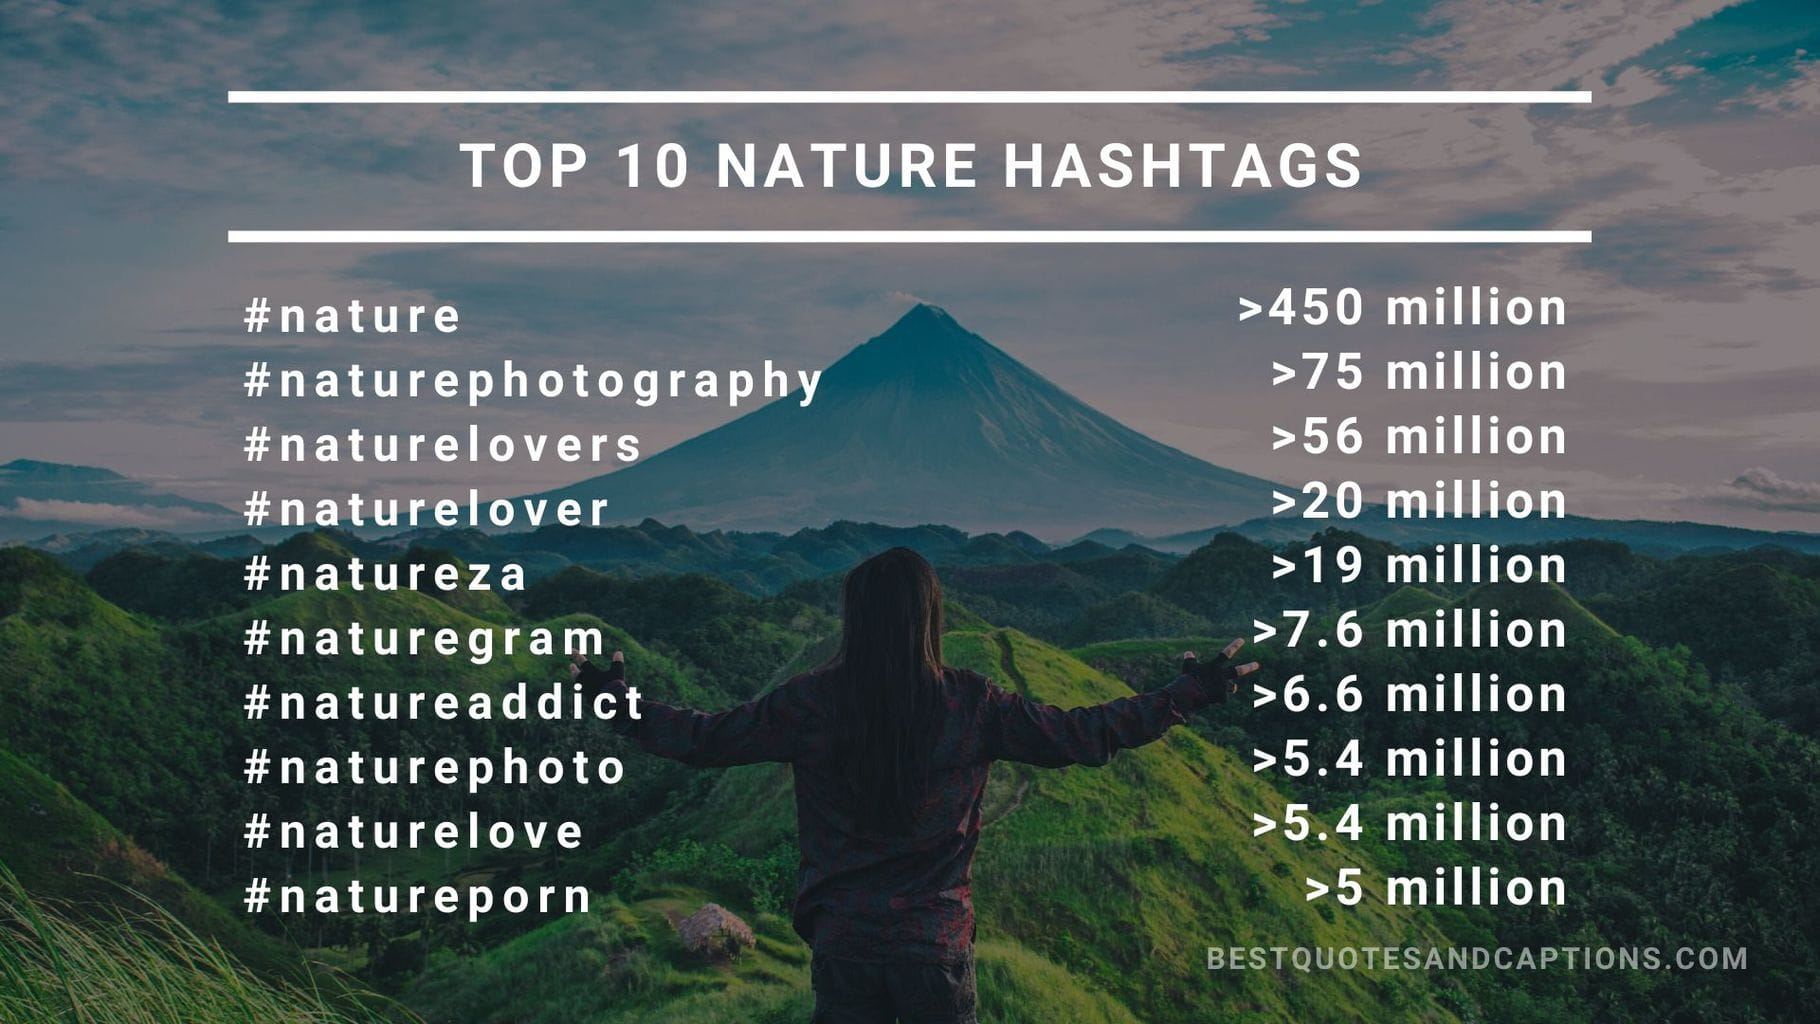 Nature Hashtags Top 10